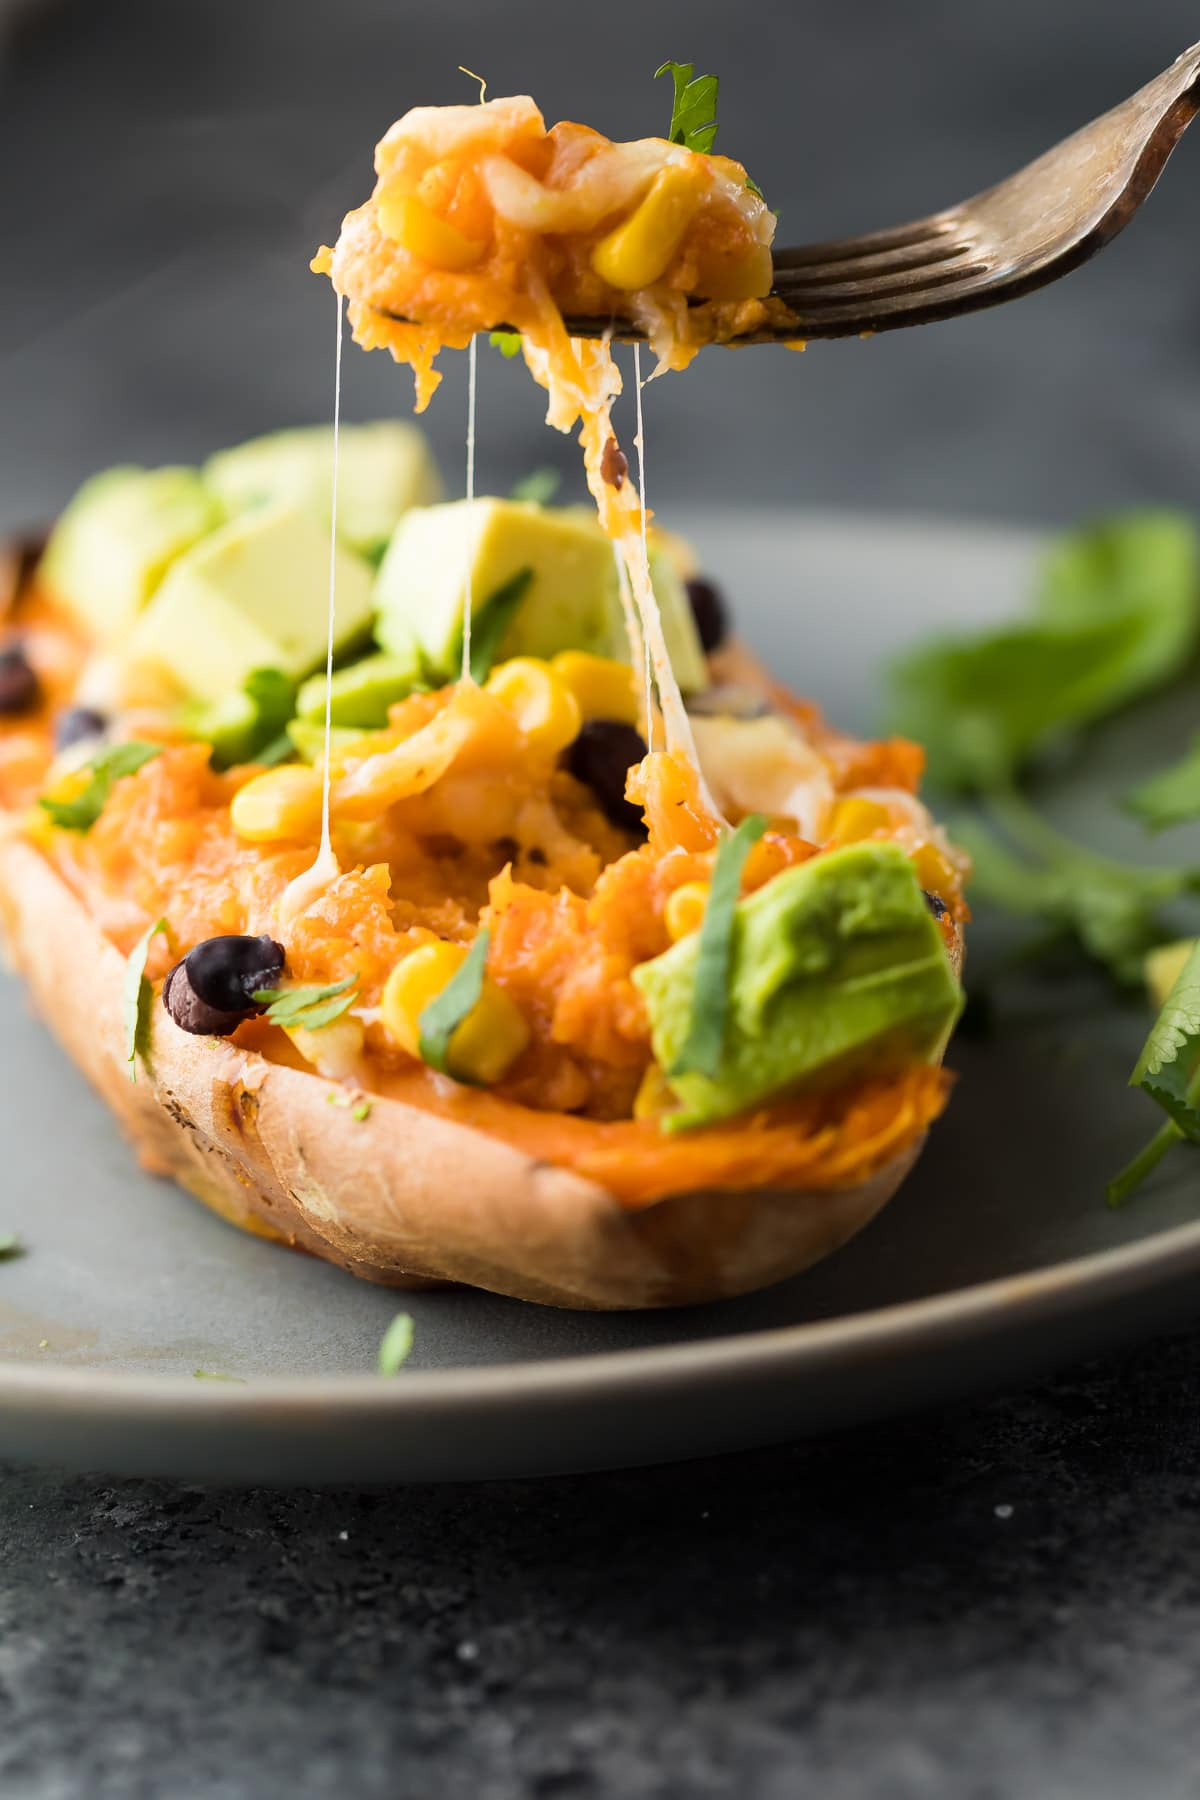 Freezer-Enchilada-Stuffed-Sweet-Potatoes-